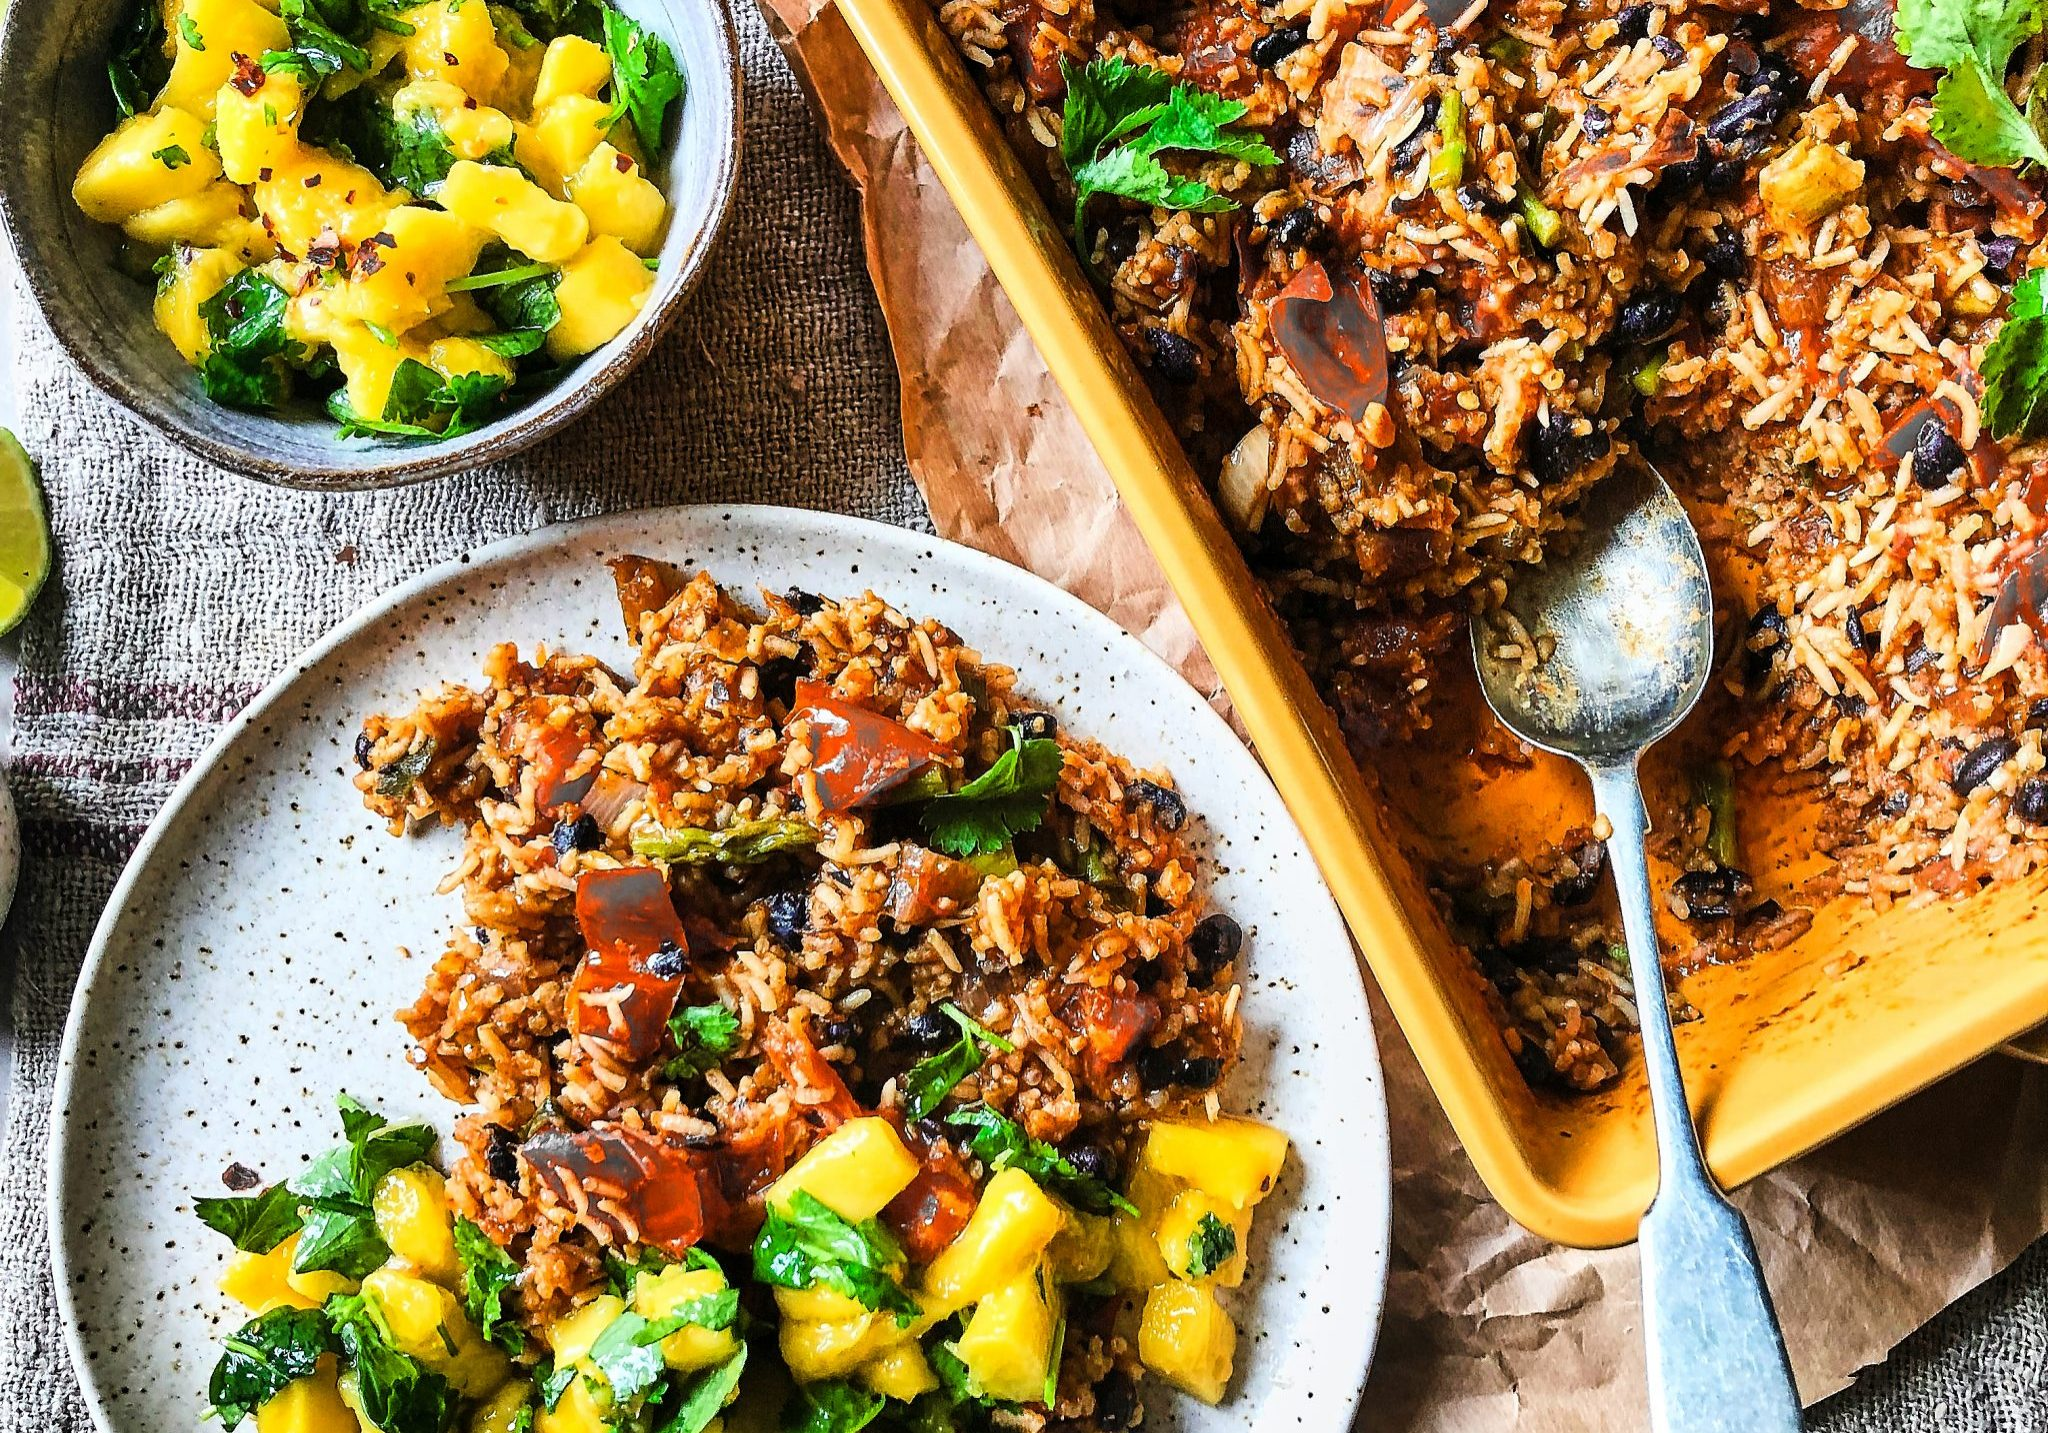 BakedMexican rice with beans and greens topped with mango salsa 1